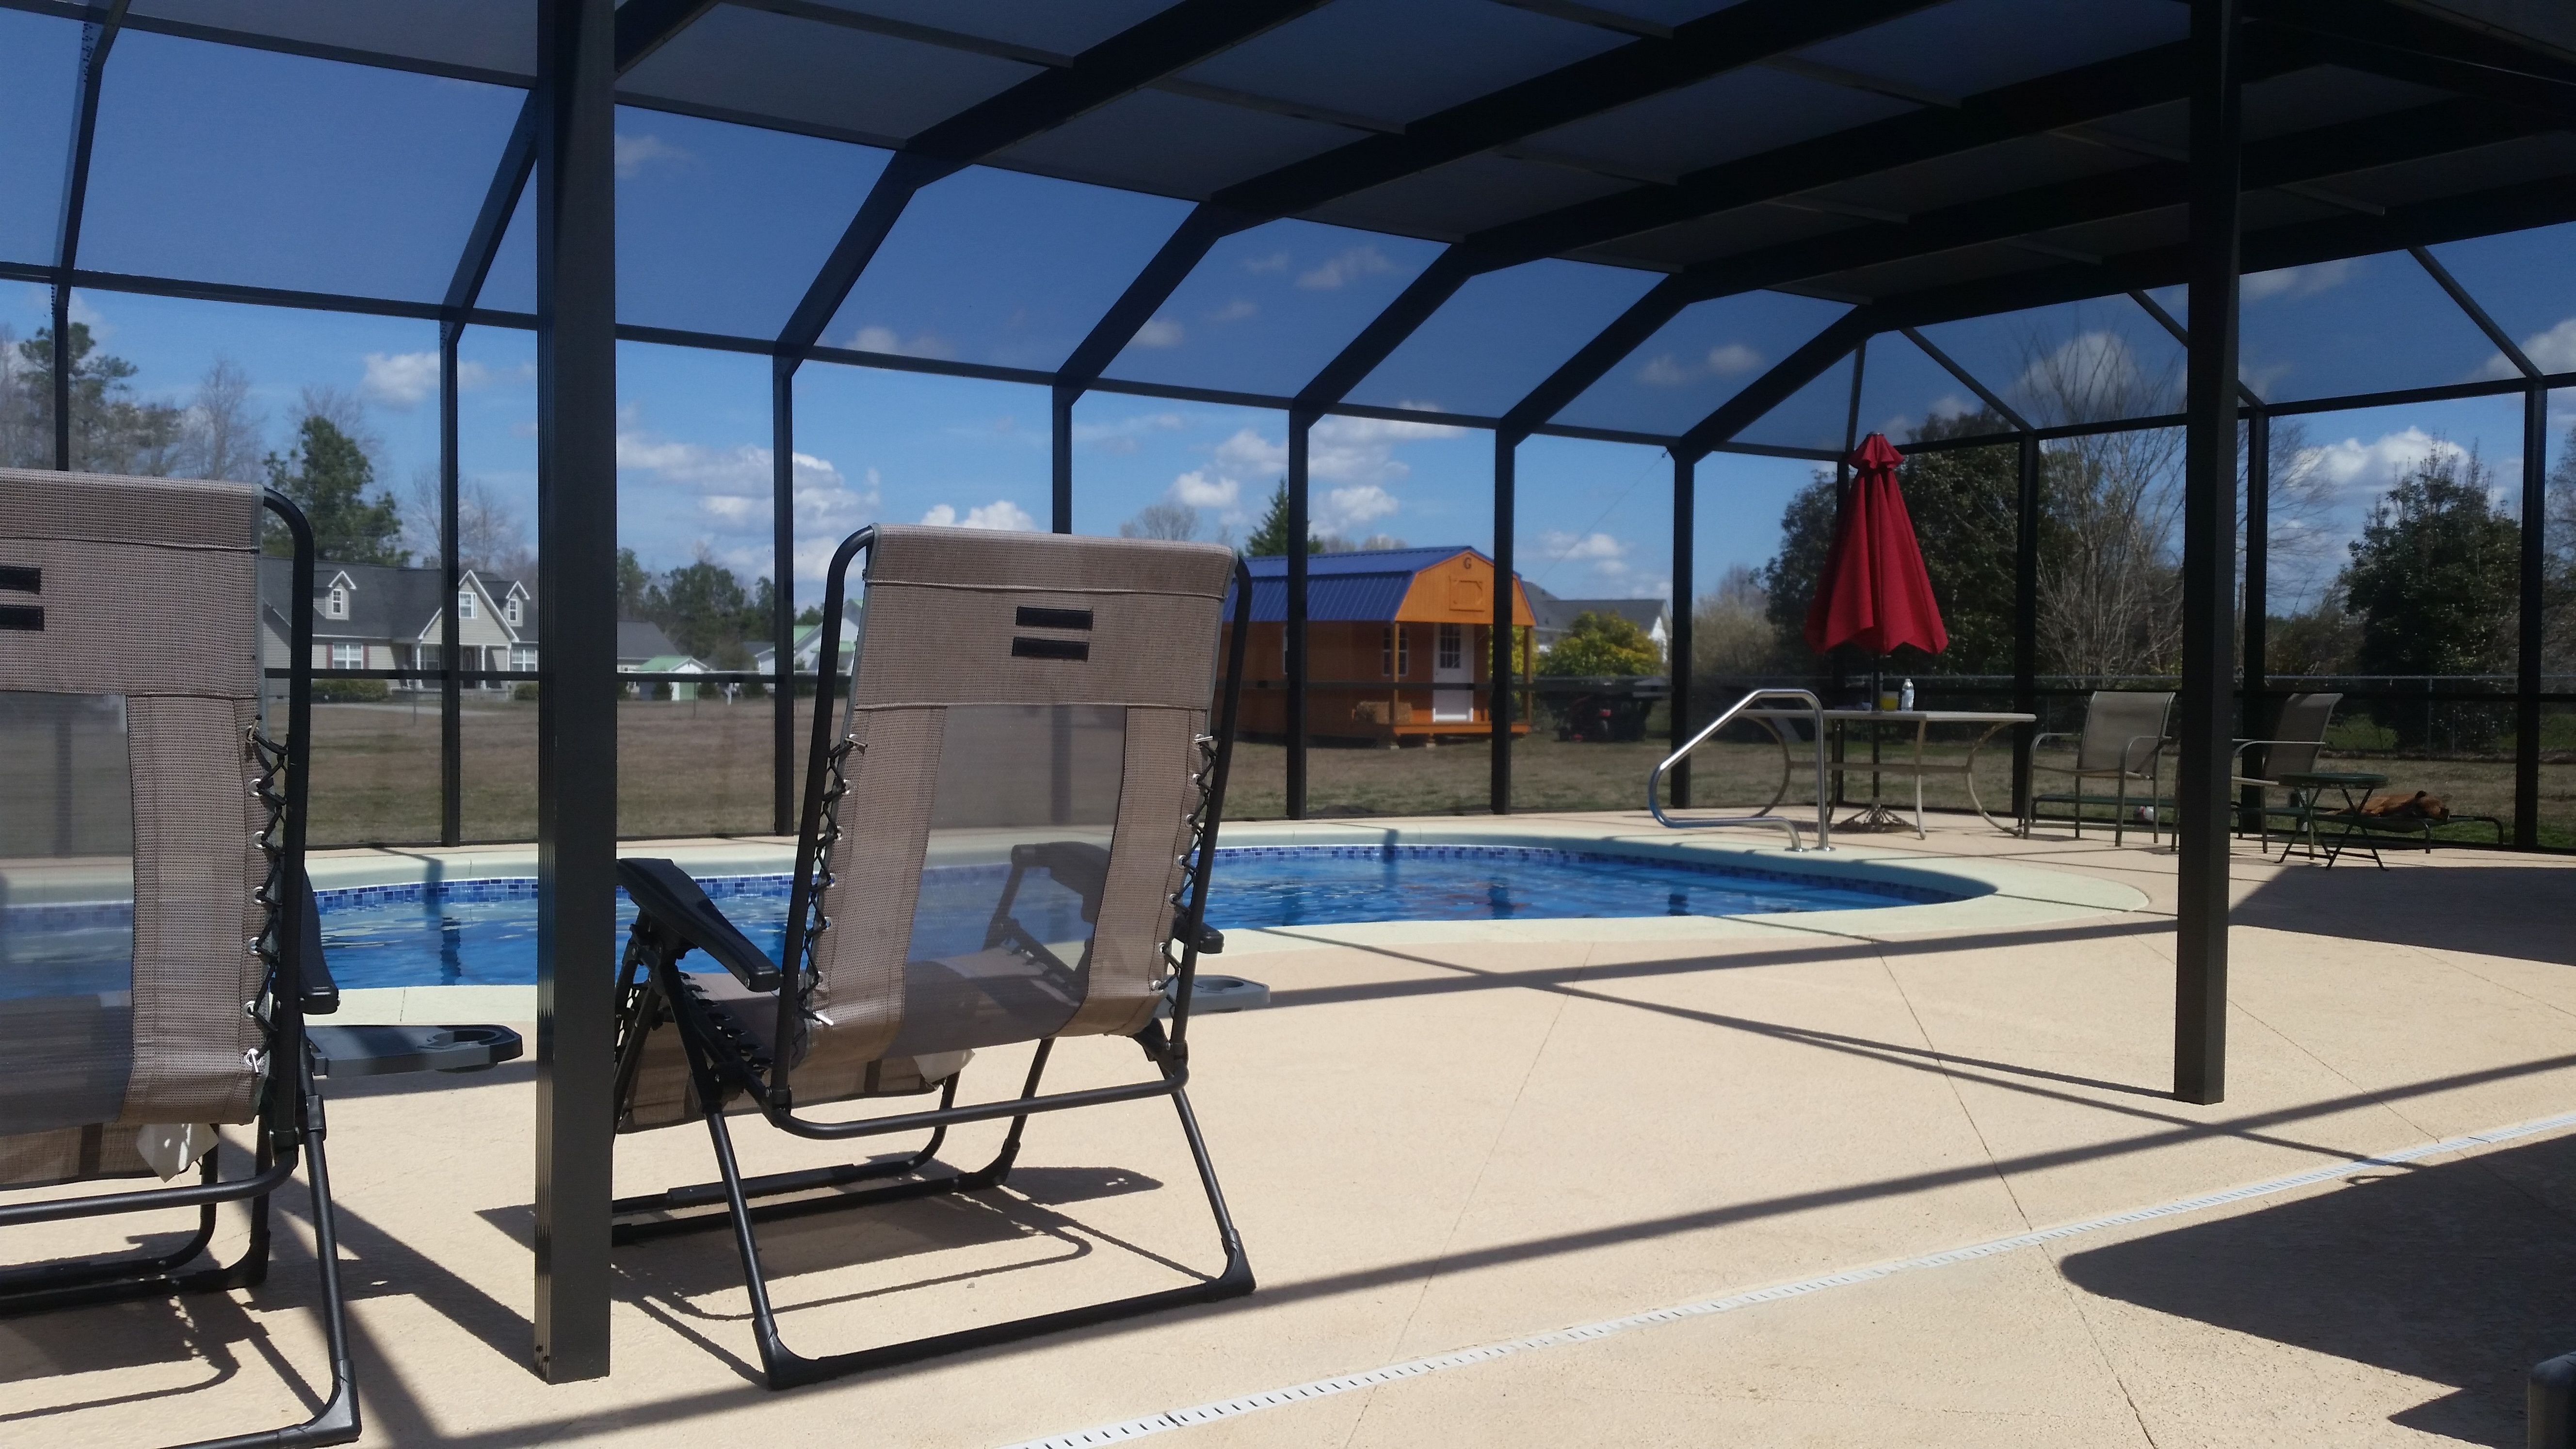 Sunroom Enclosures In Myrtle Beach Sc Beautiful Pools Pool Enclosures Myrtle Beach